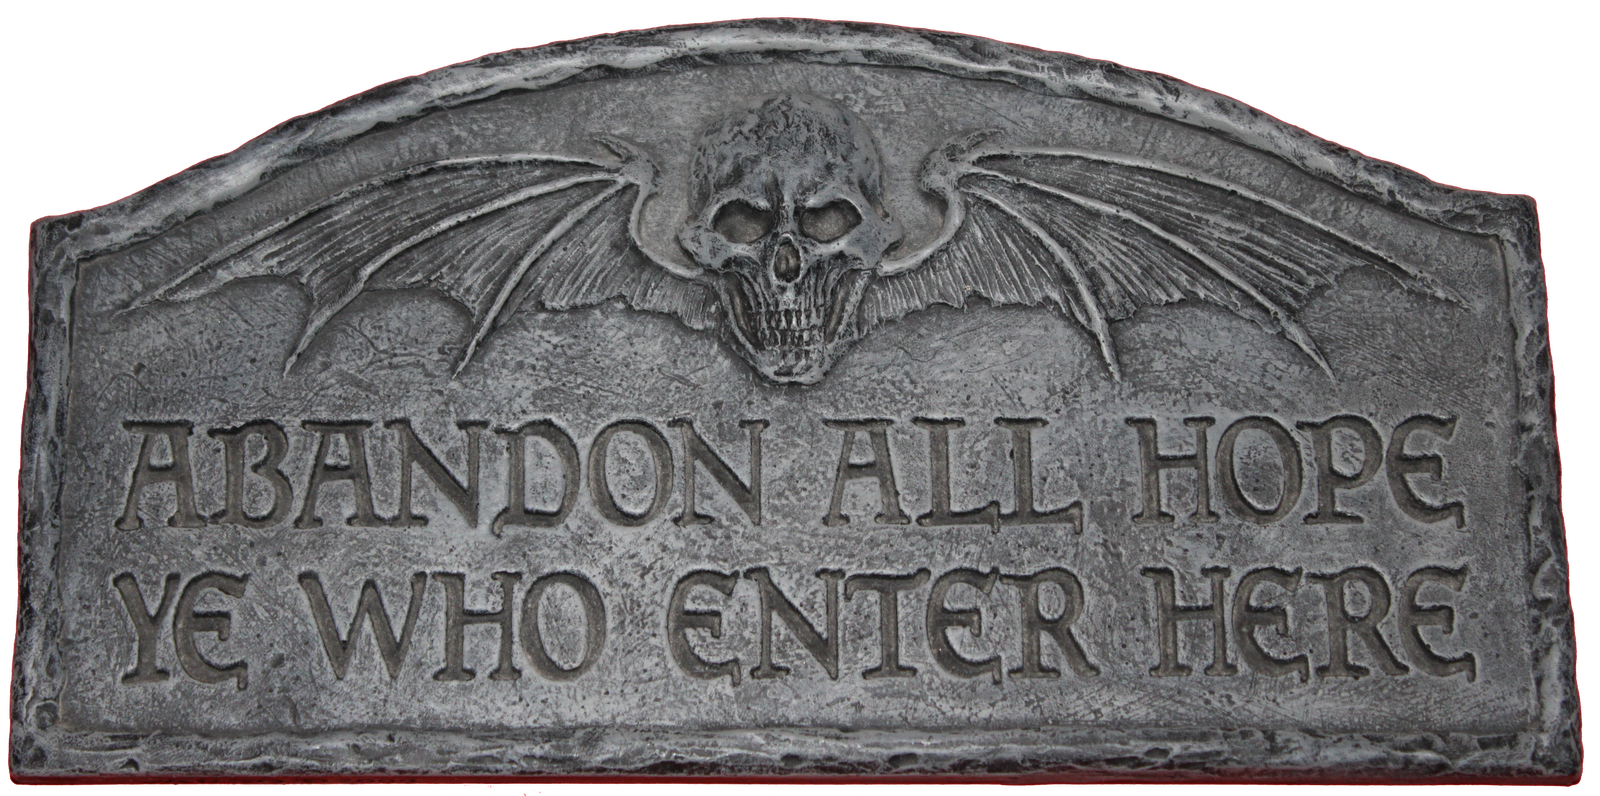 Halloween tombstones sayings clipart jpg black and white download Abandon all hope ye who enter here sign. I want one ... jpg black and white download